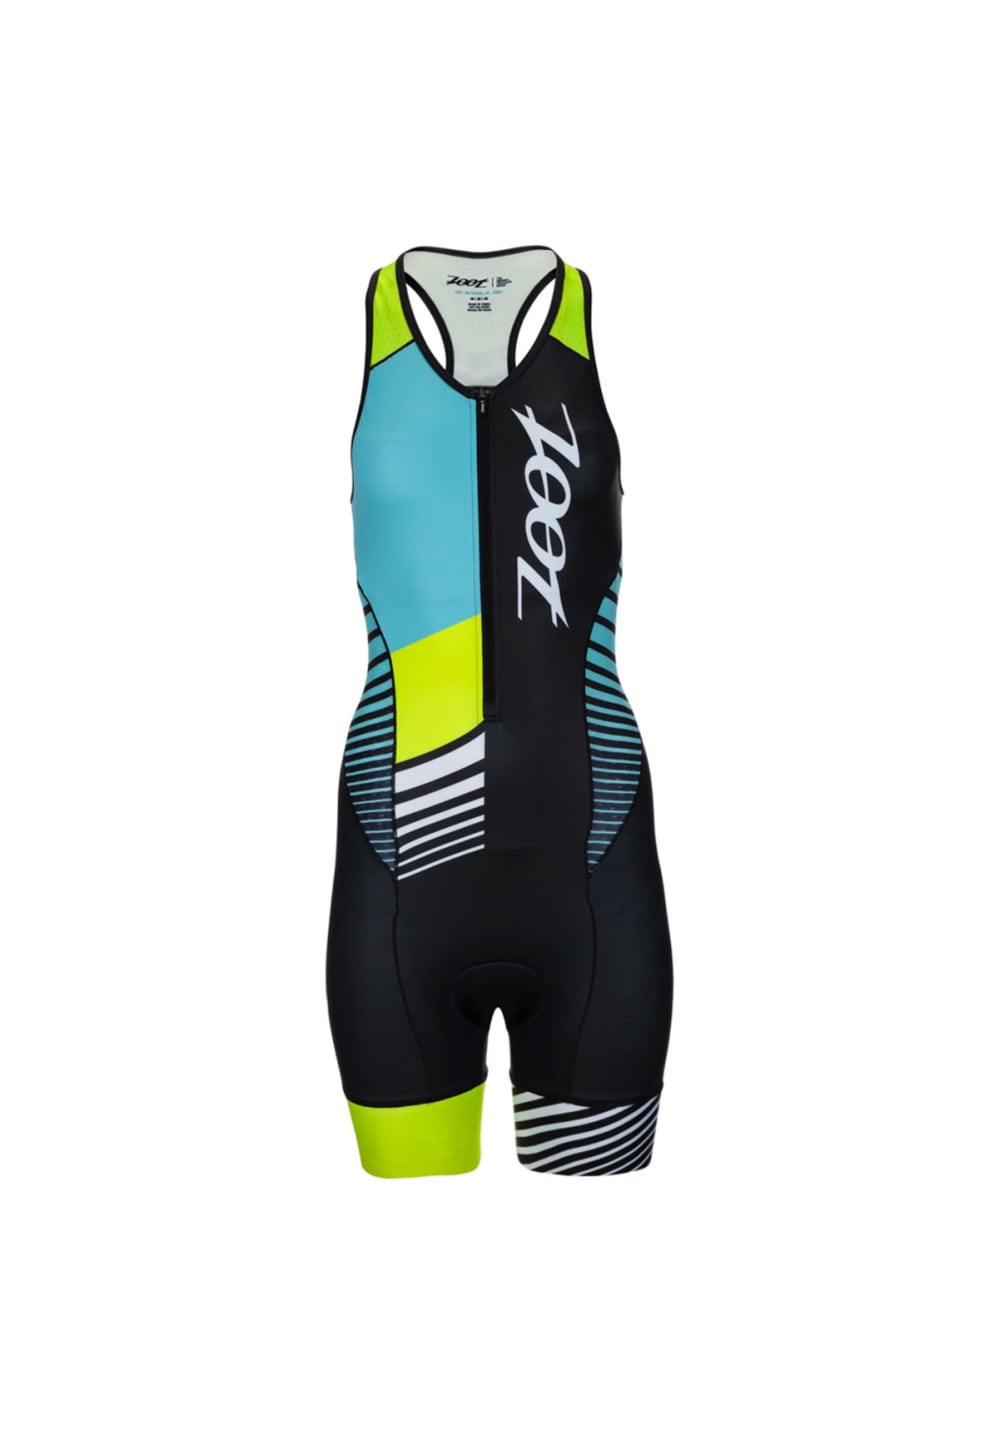 Zoot Ltd Tri Racesuit - Triathlon for Women - Black